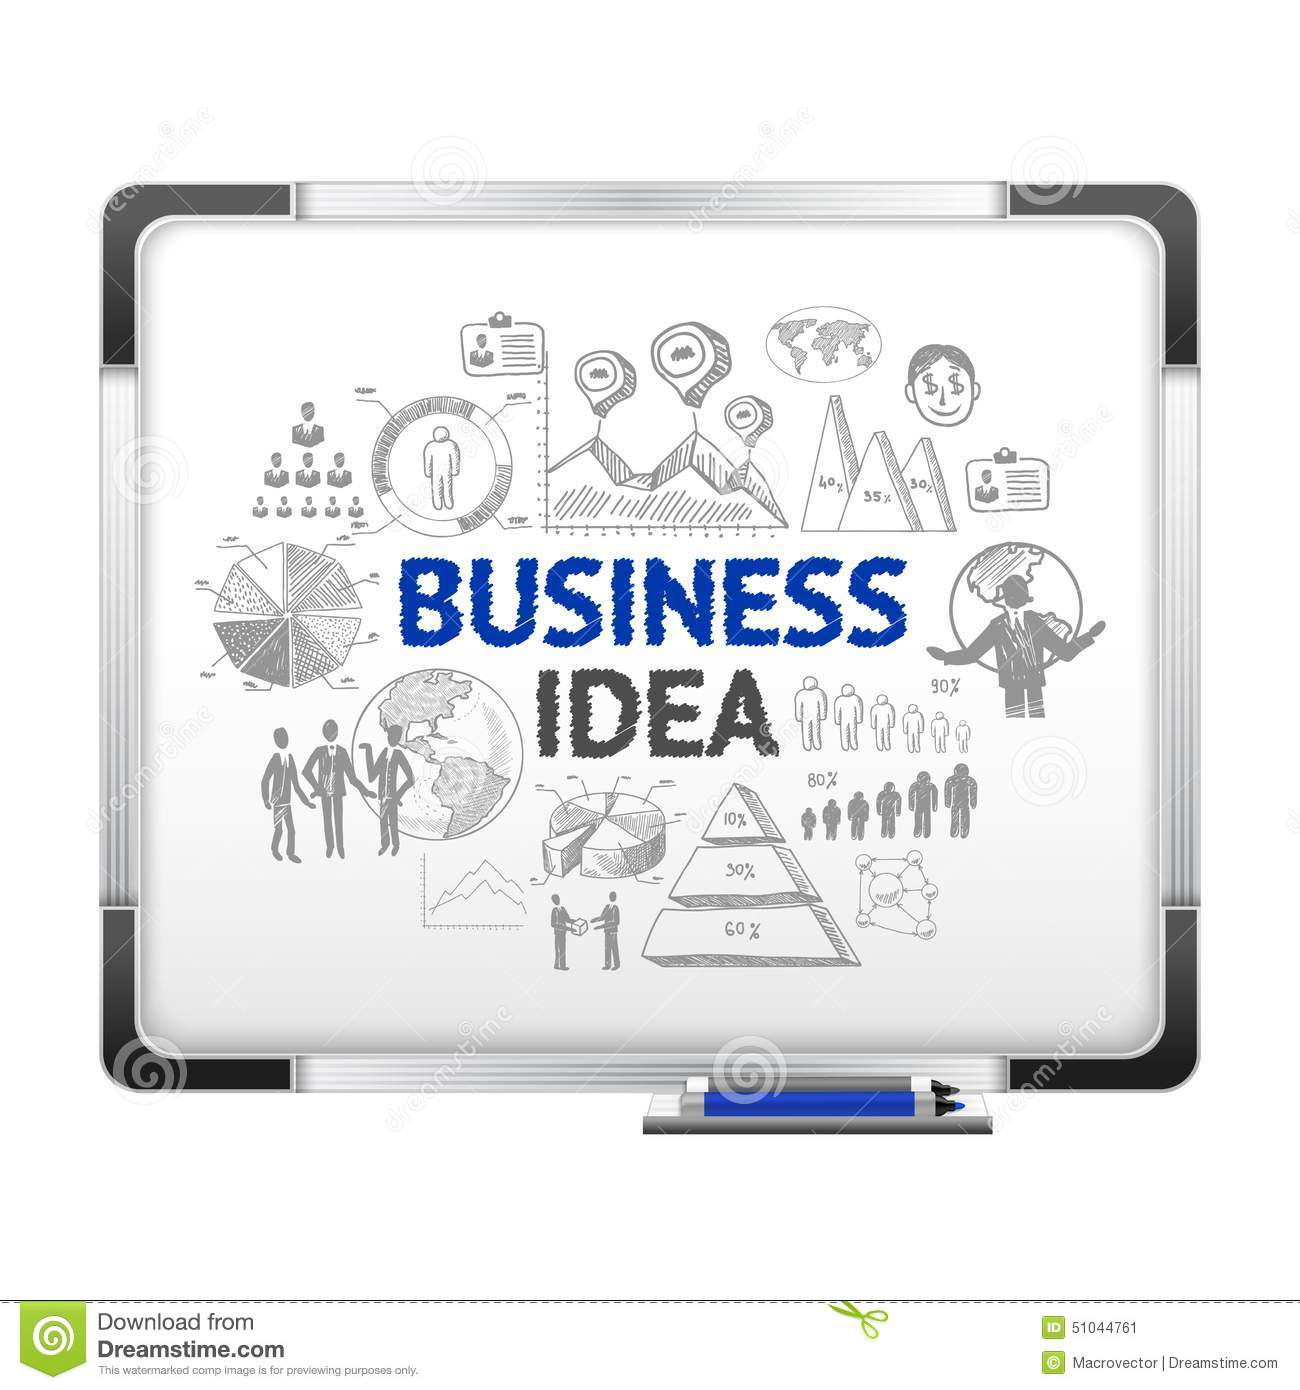 Magnet Board With Business Ideas Sketch Stock Vector Illustration Of Layout People 51044761